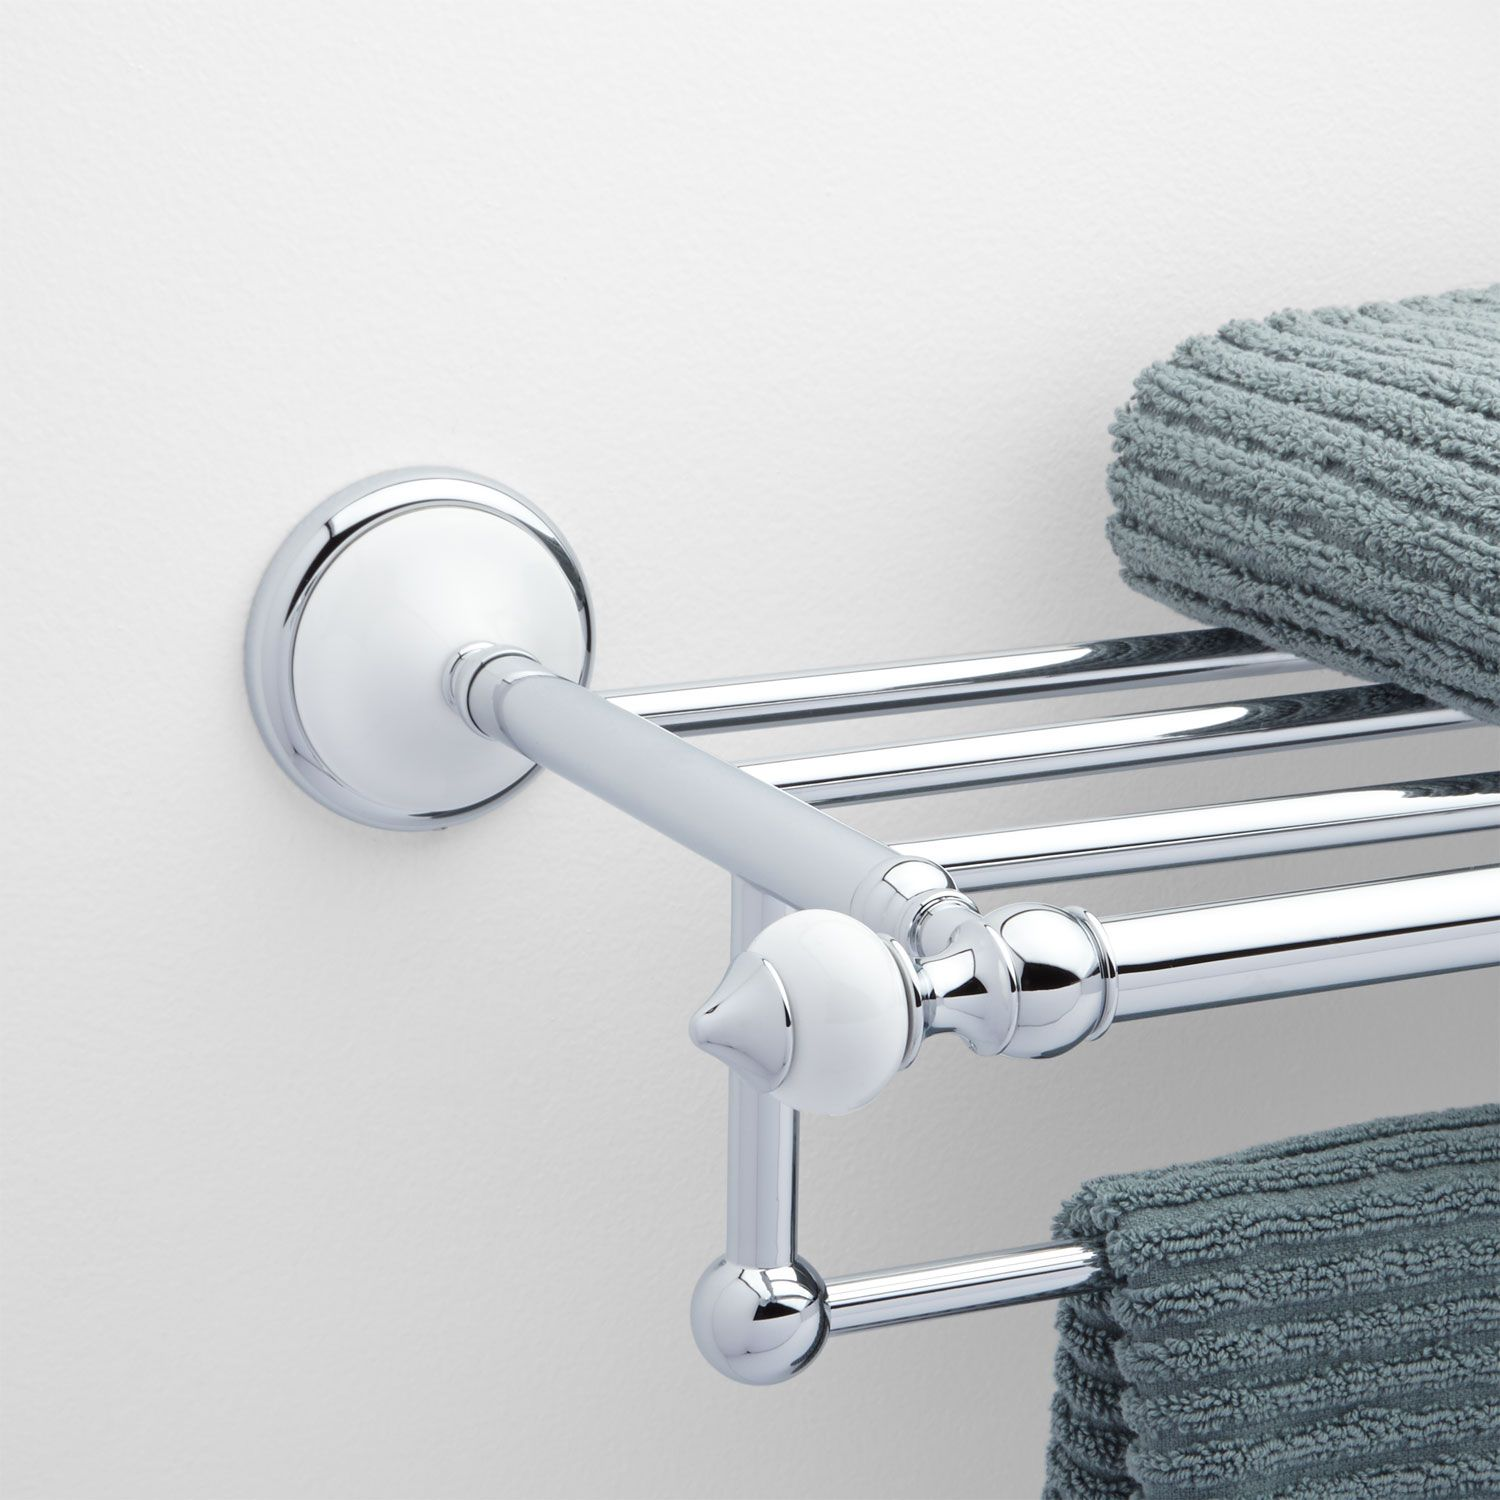 Water Creation 29 In Towel Bar And Bath Train Rack In Brushed Nickel Ba 0001 02 The Home Depot Water Creation Vintage Bathroom Accessories Towel Bar